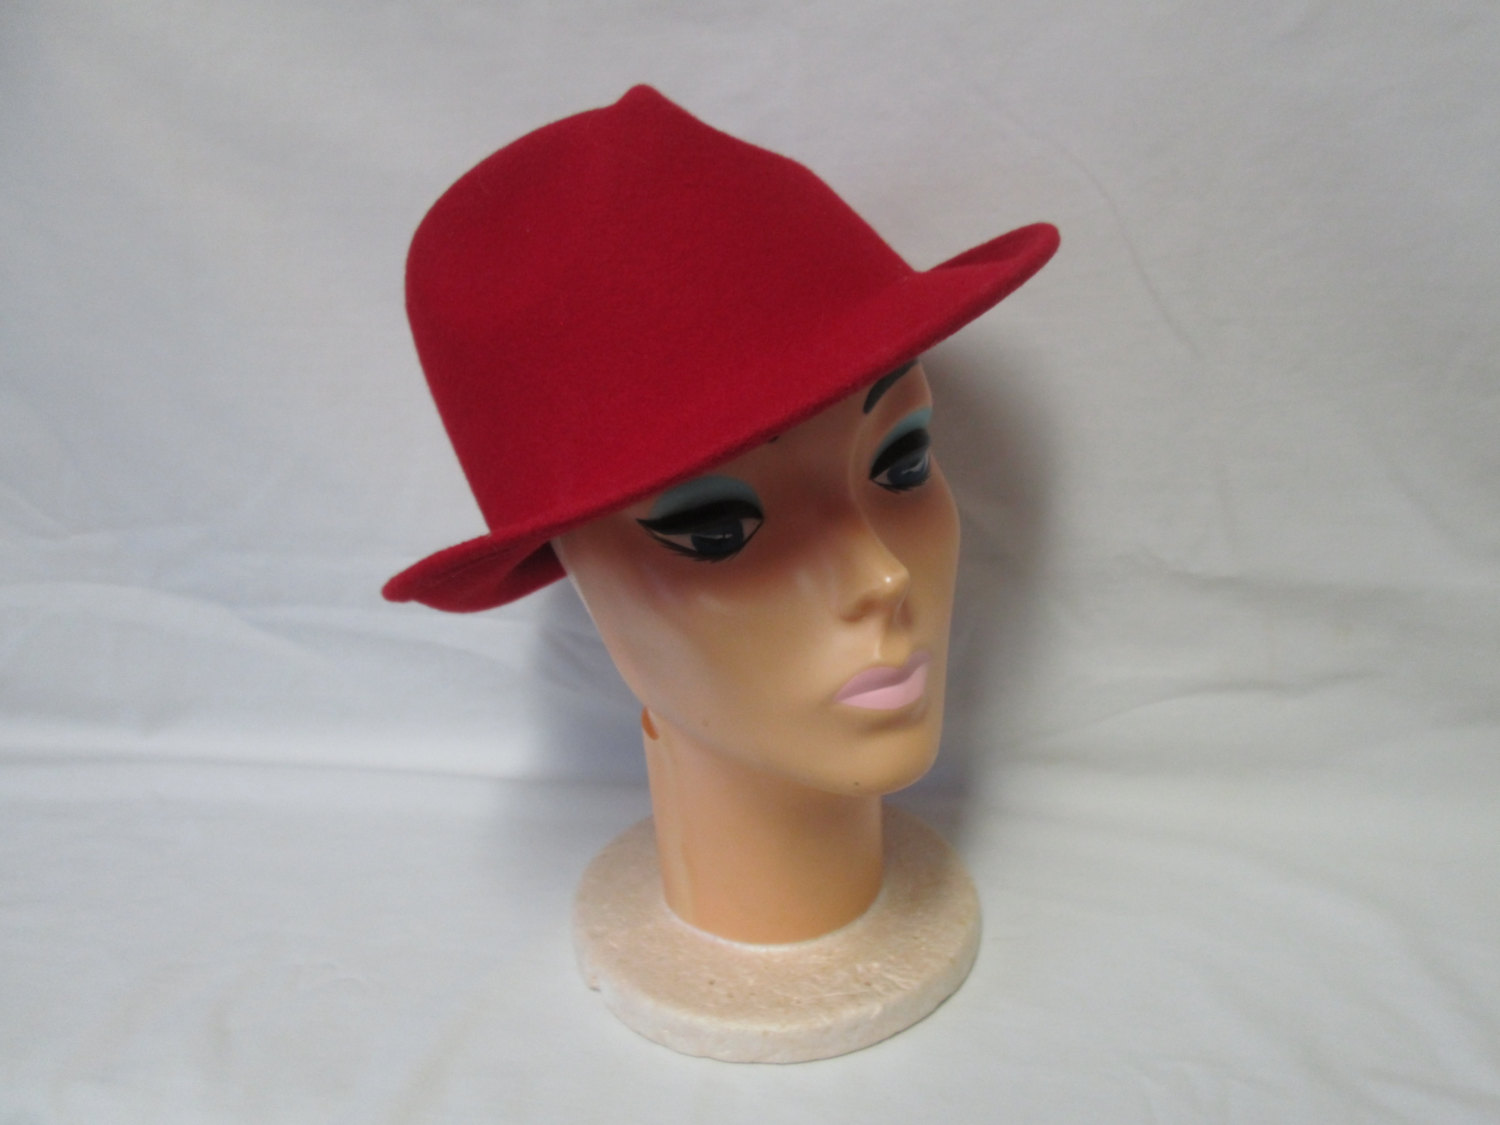 055bae873 Vintage 1940's Red 100% wool Fedora Hat Women's Size 22 USA Collectible  display tv movie prop kentucky derby